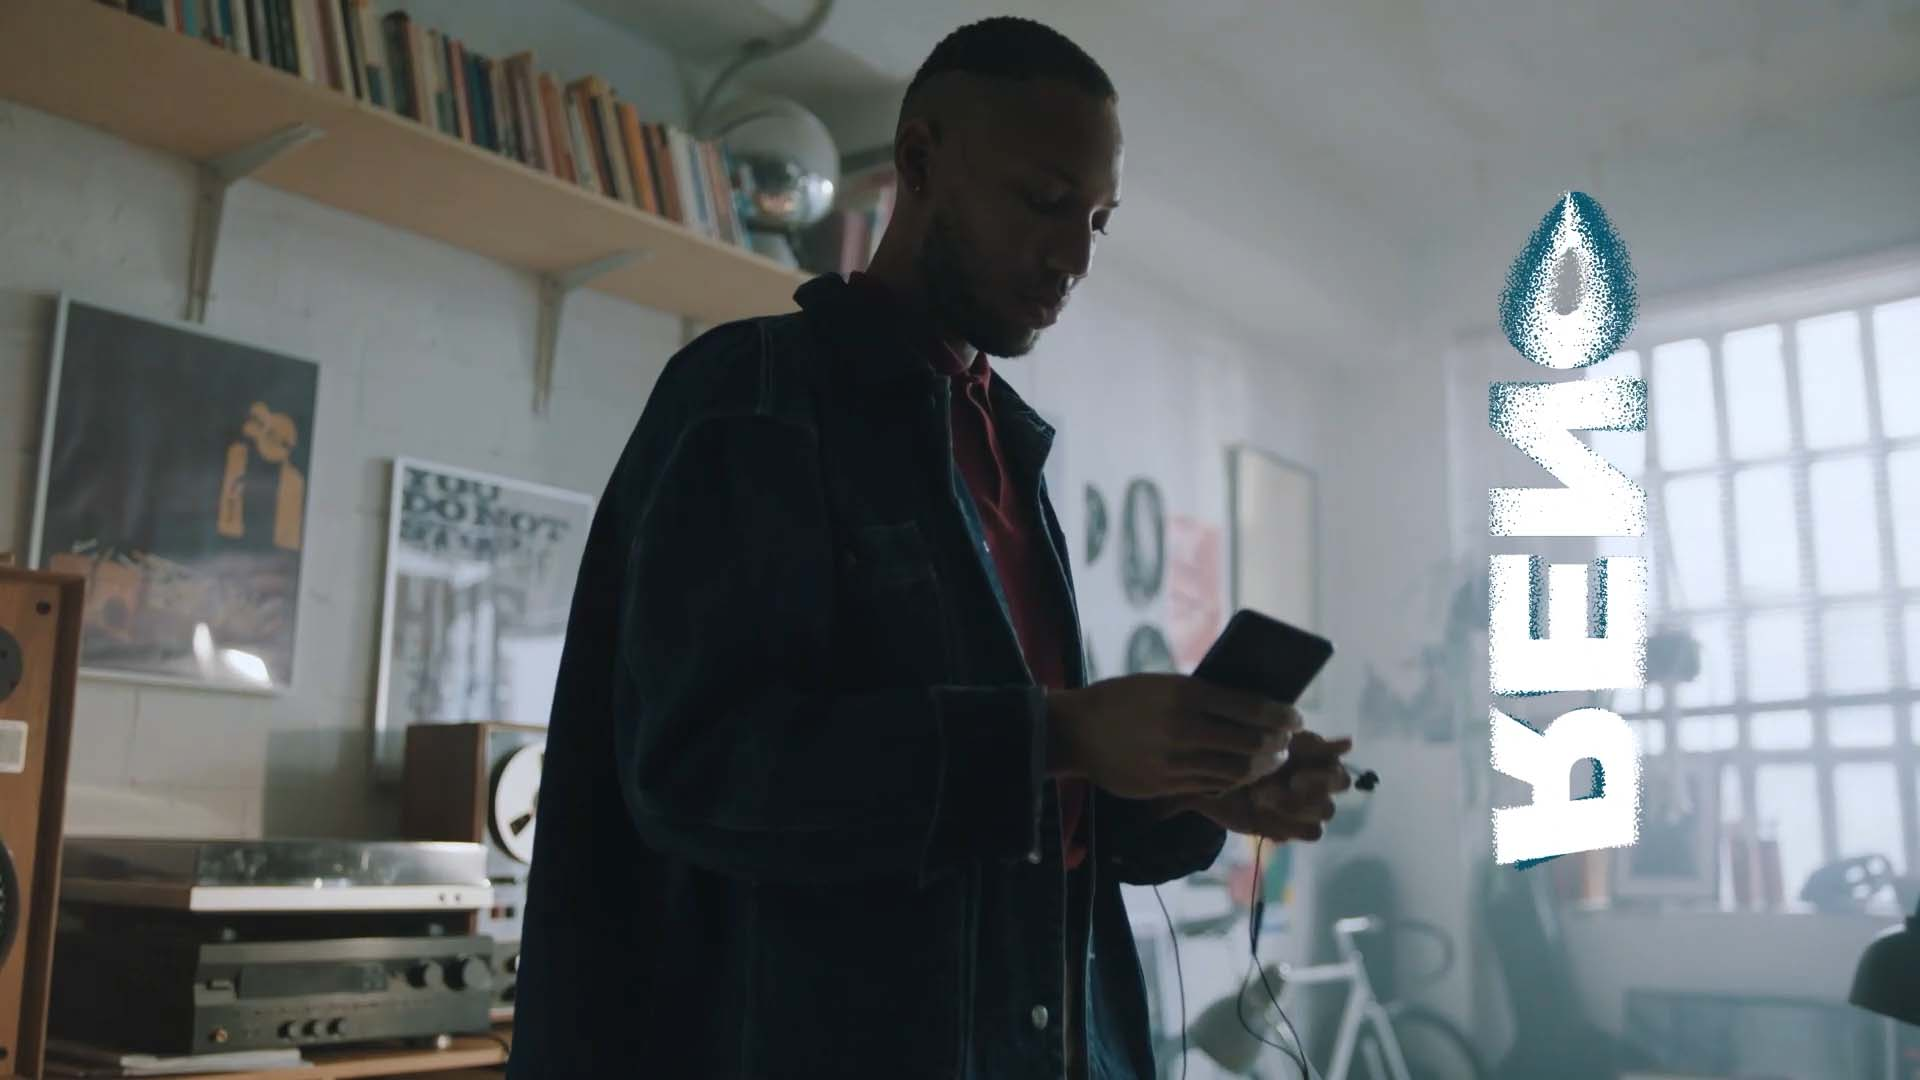 Picture of Oppo's commercial, by Perimetre creative studio based in Paris